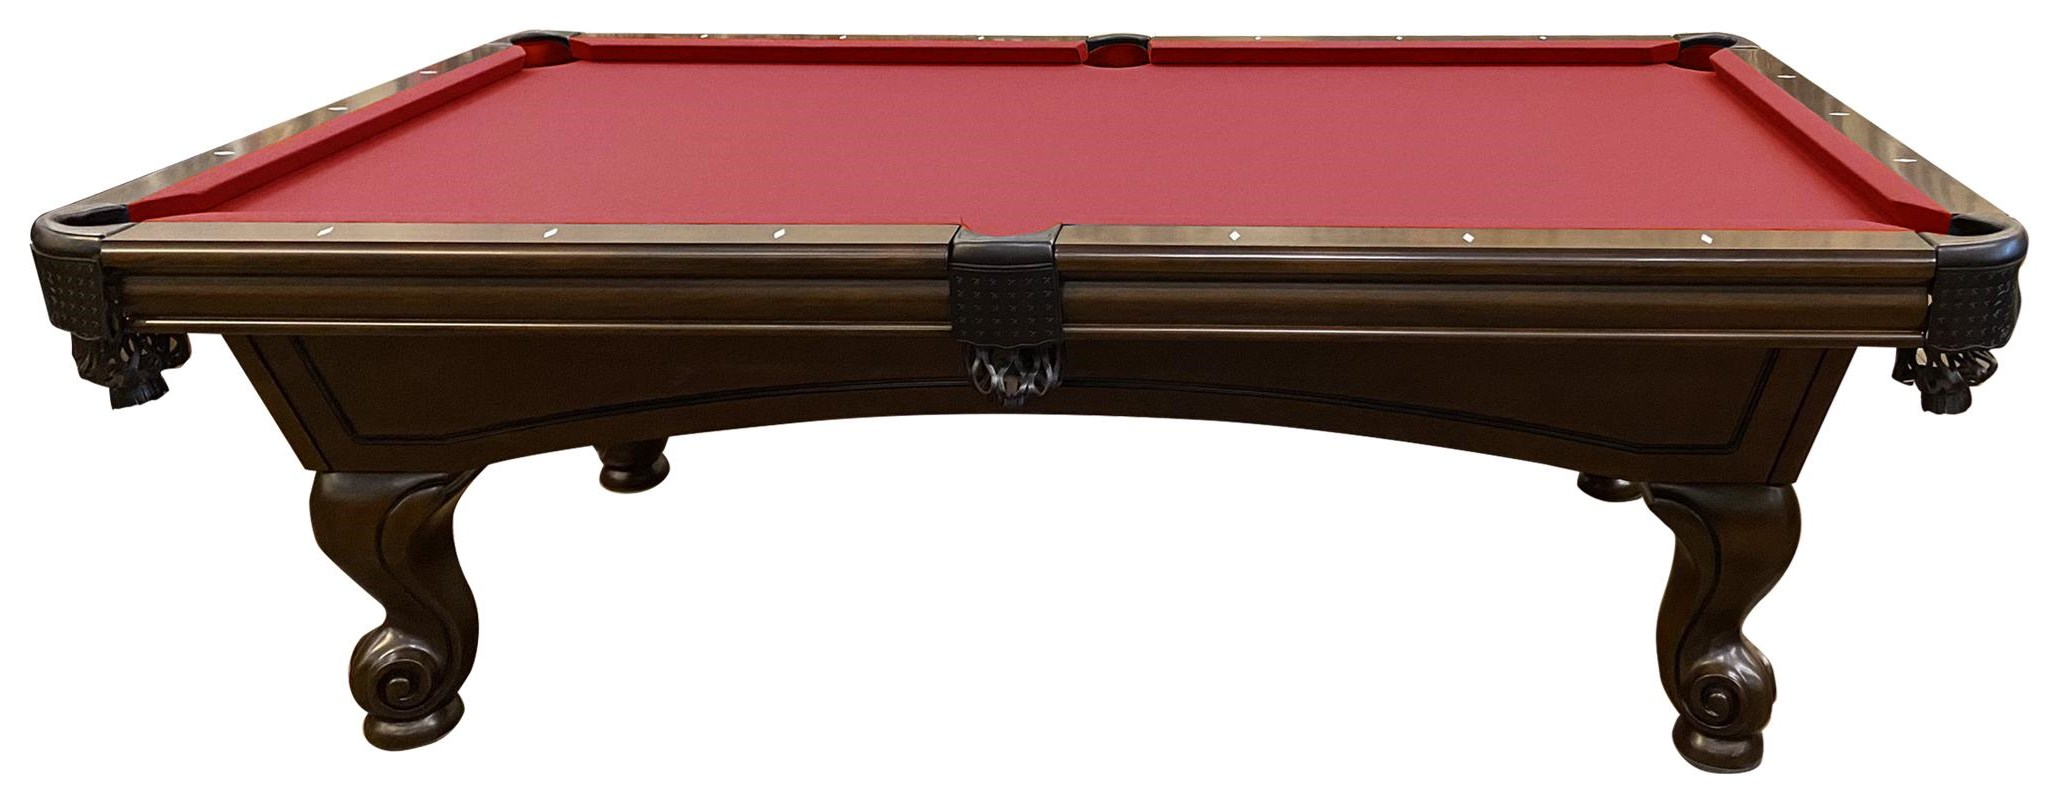 Madison 8' Pool Table by Plank & Hide at Johnny Janosik